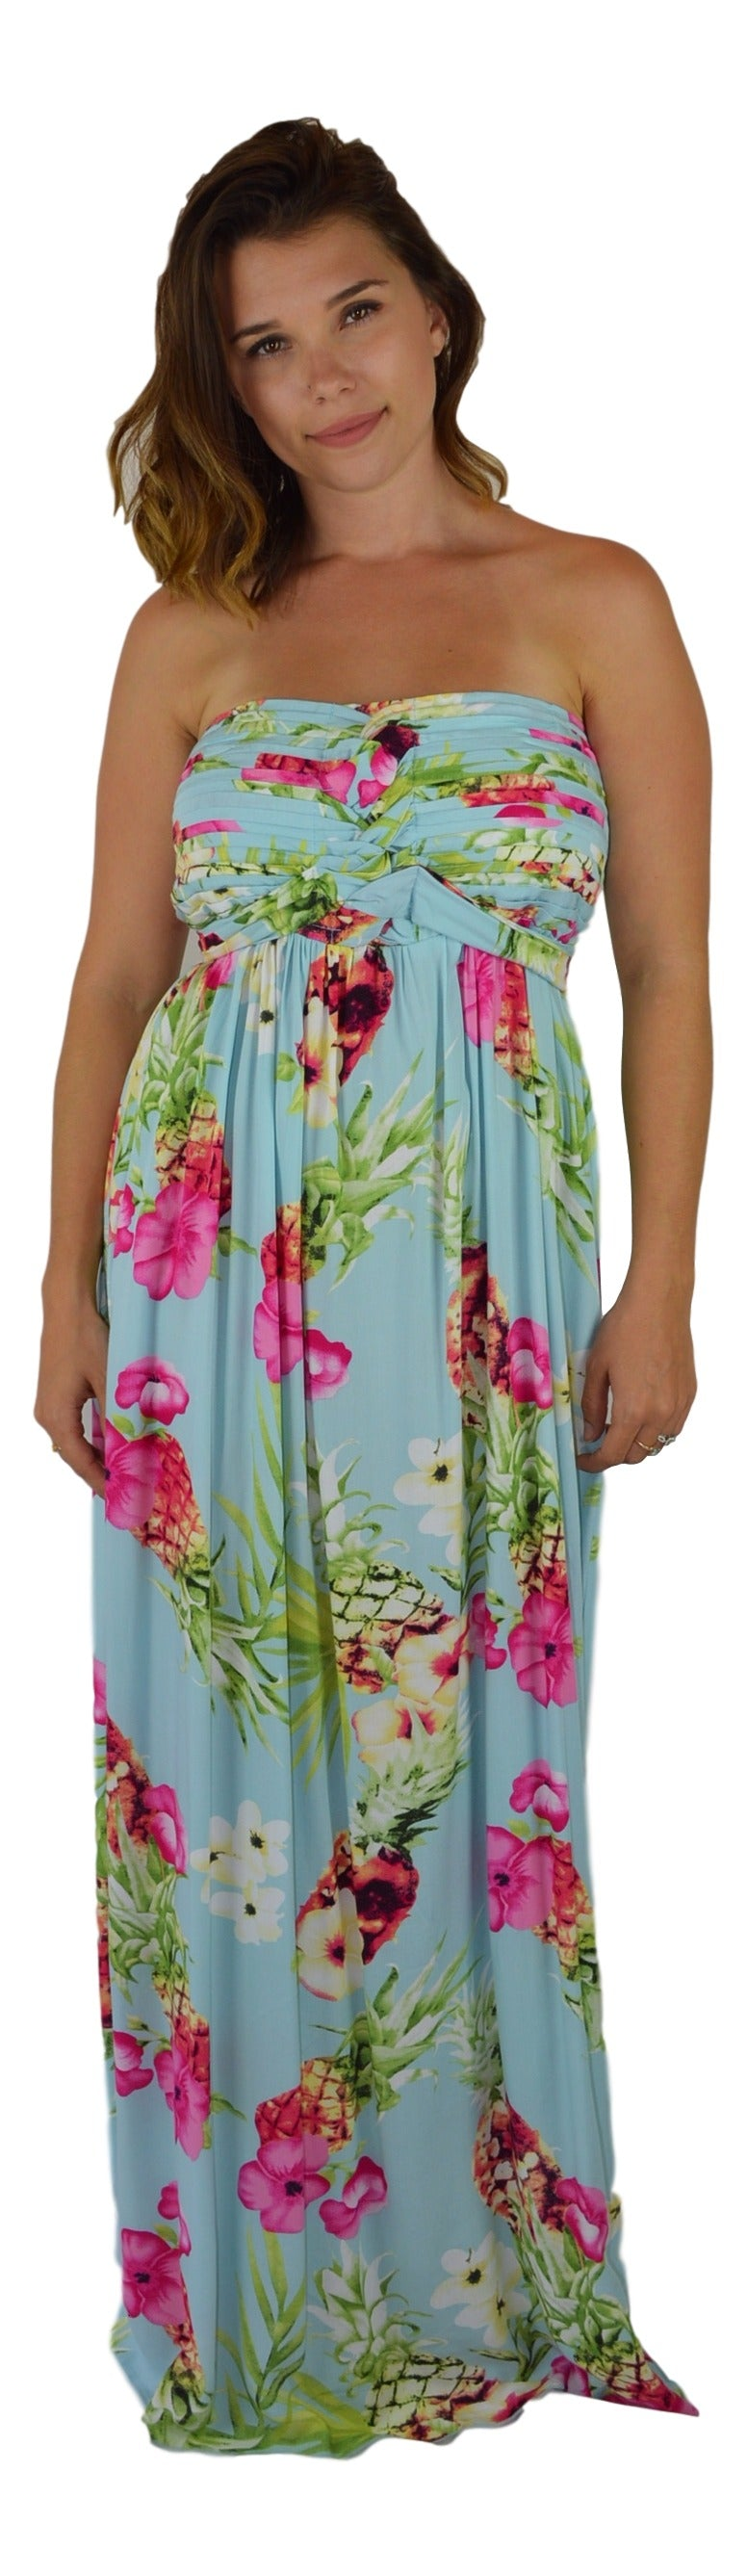 Secret Beach - Wailea Dress - Long - Hibiscus Pineapple - Blue